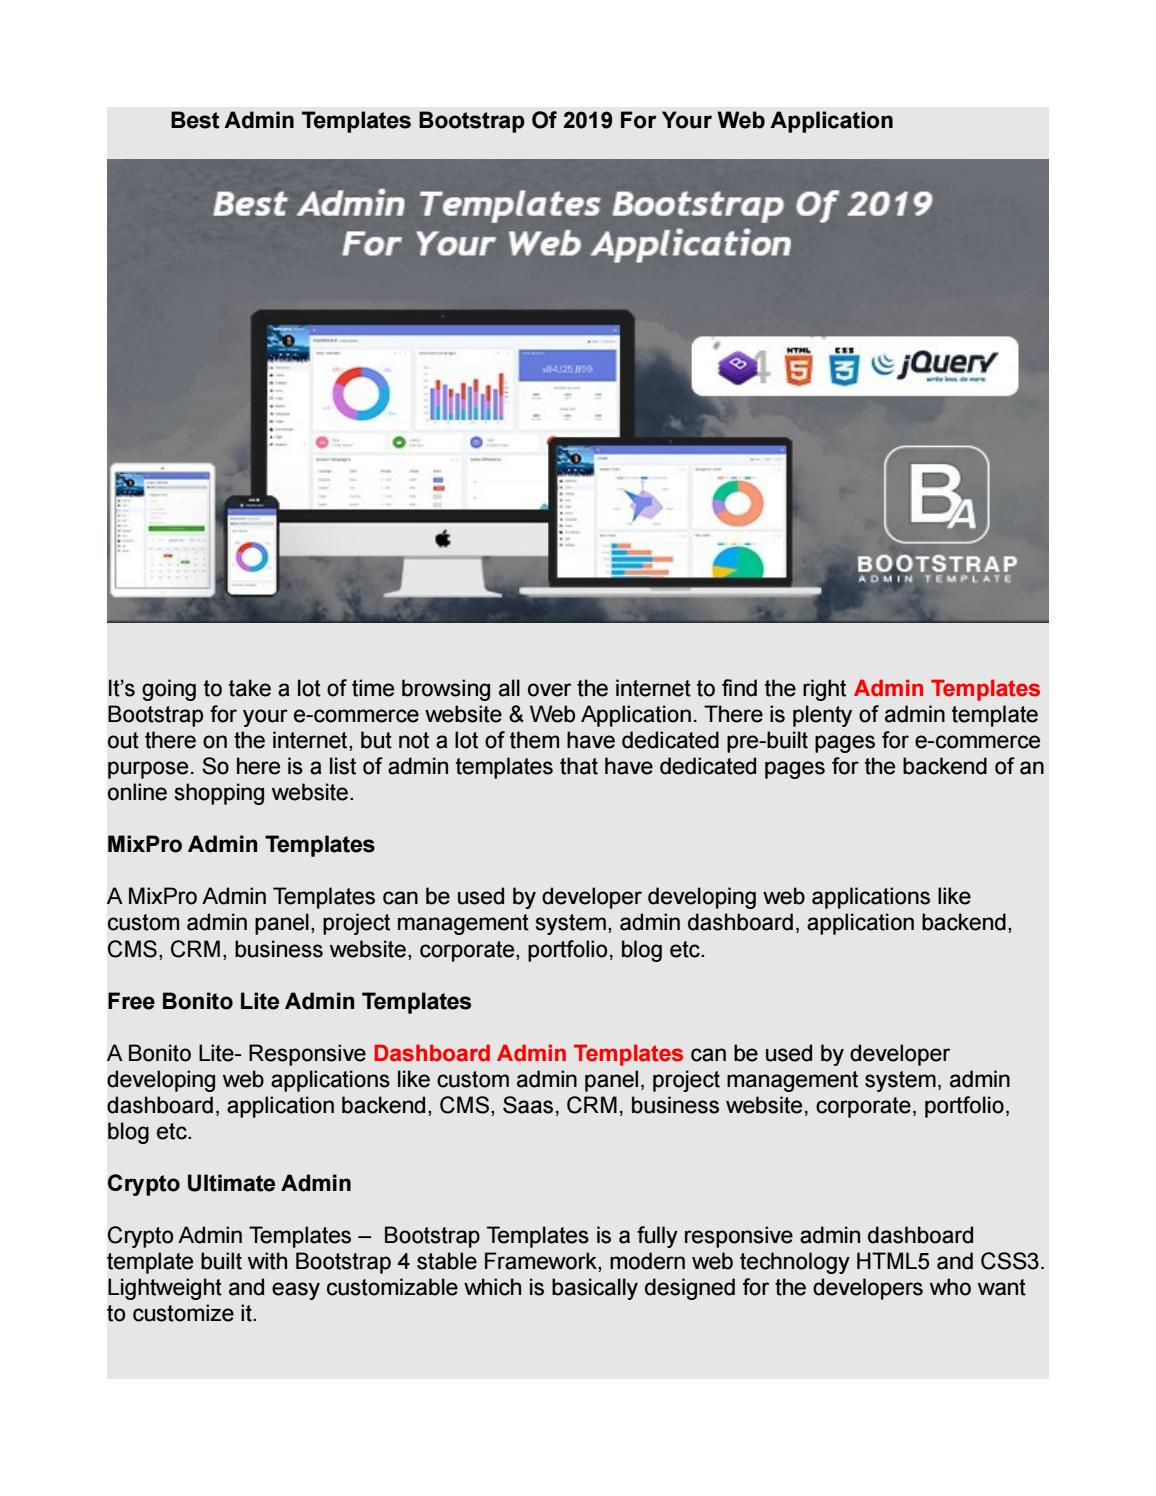 Best Admin Templates Bootstrap Of 2019 For Your Web Application by